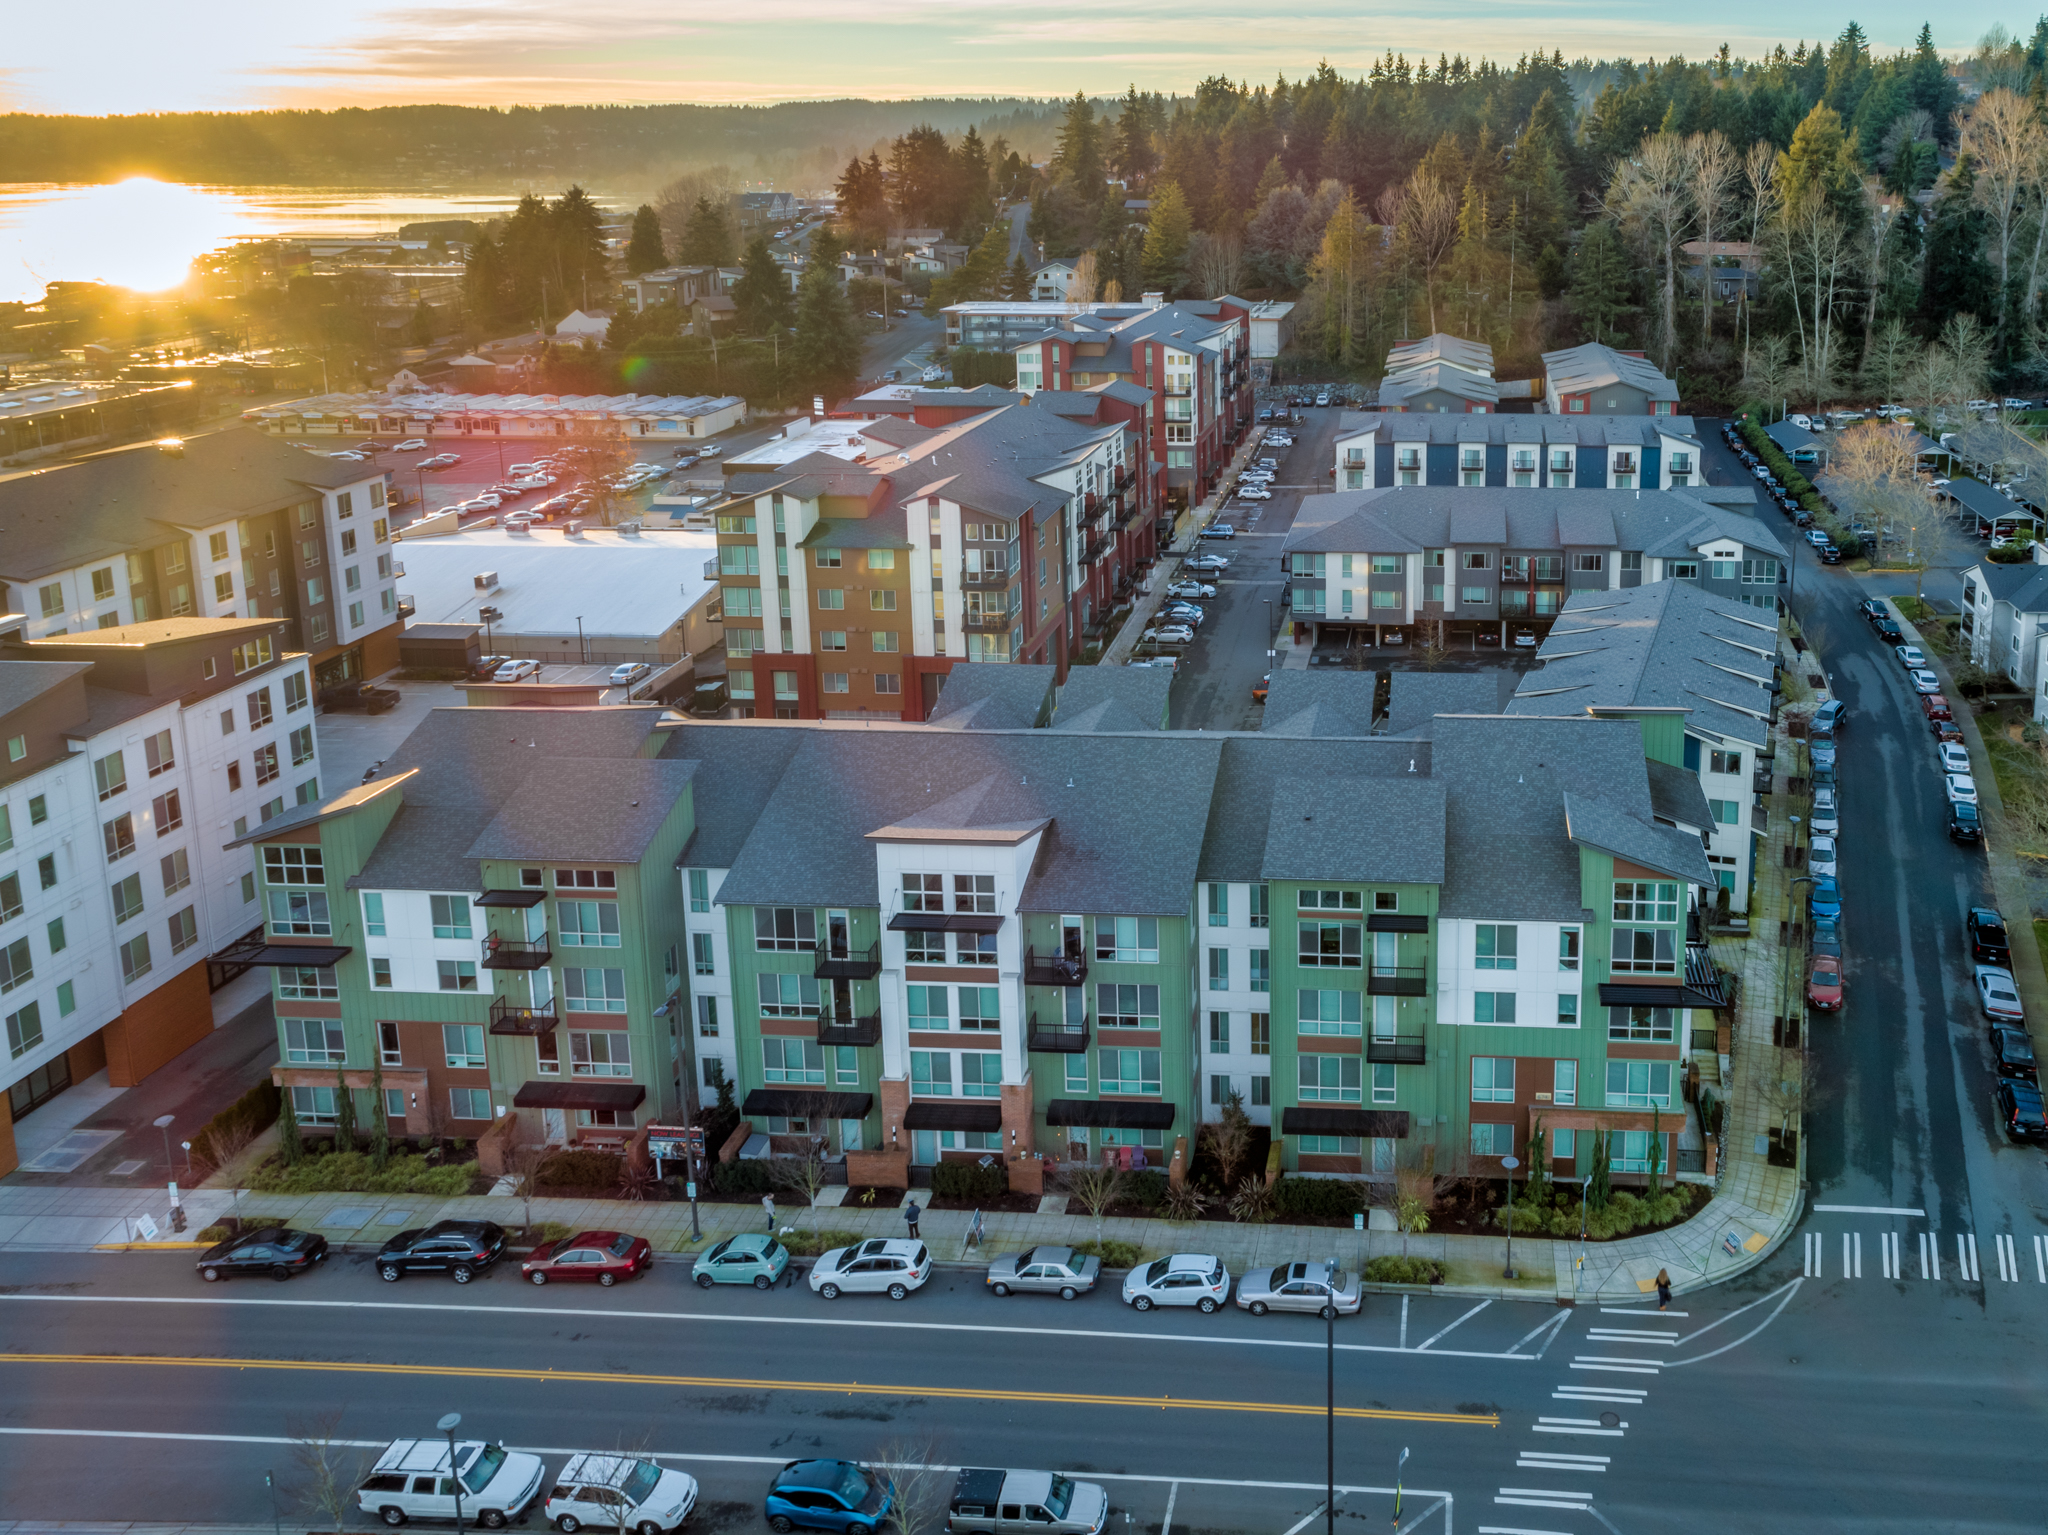 Spencer 68 Apartments_Commercial Aerial Photography Kenmore, WA-1.jpg